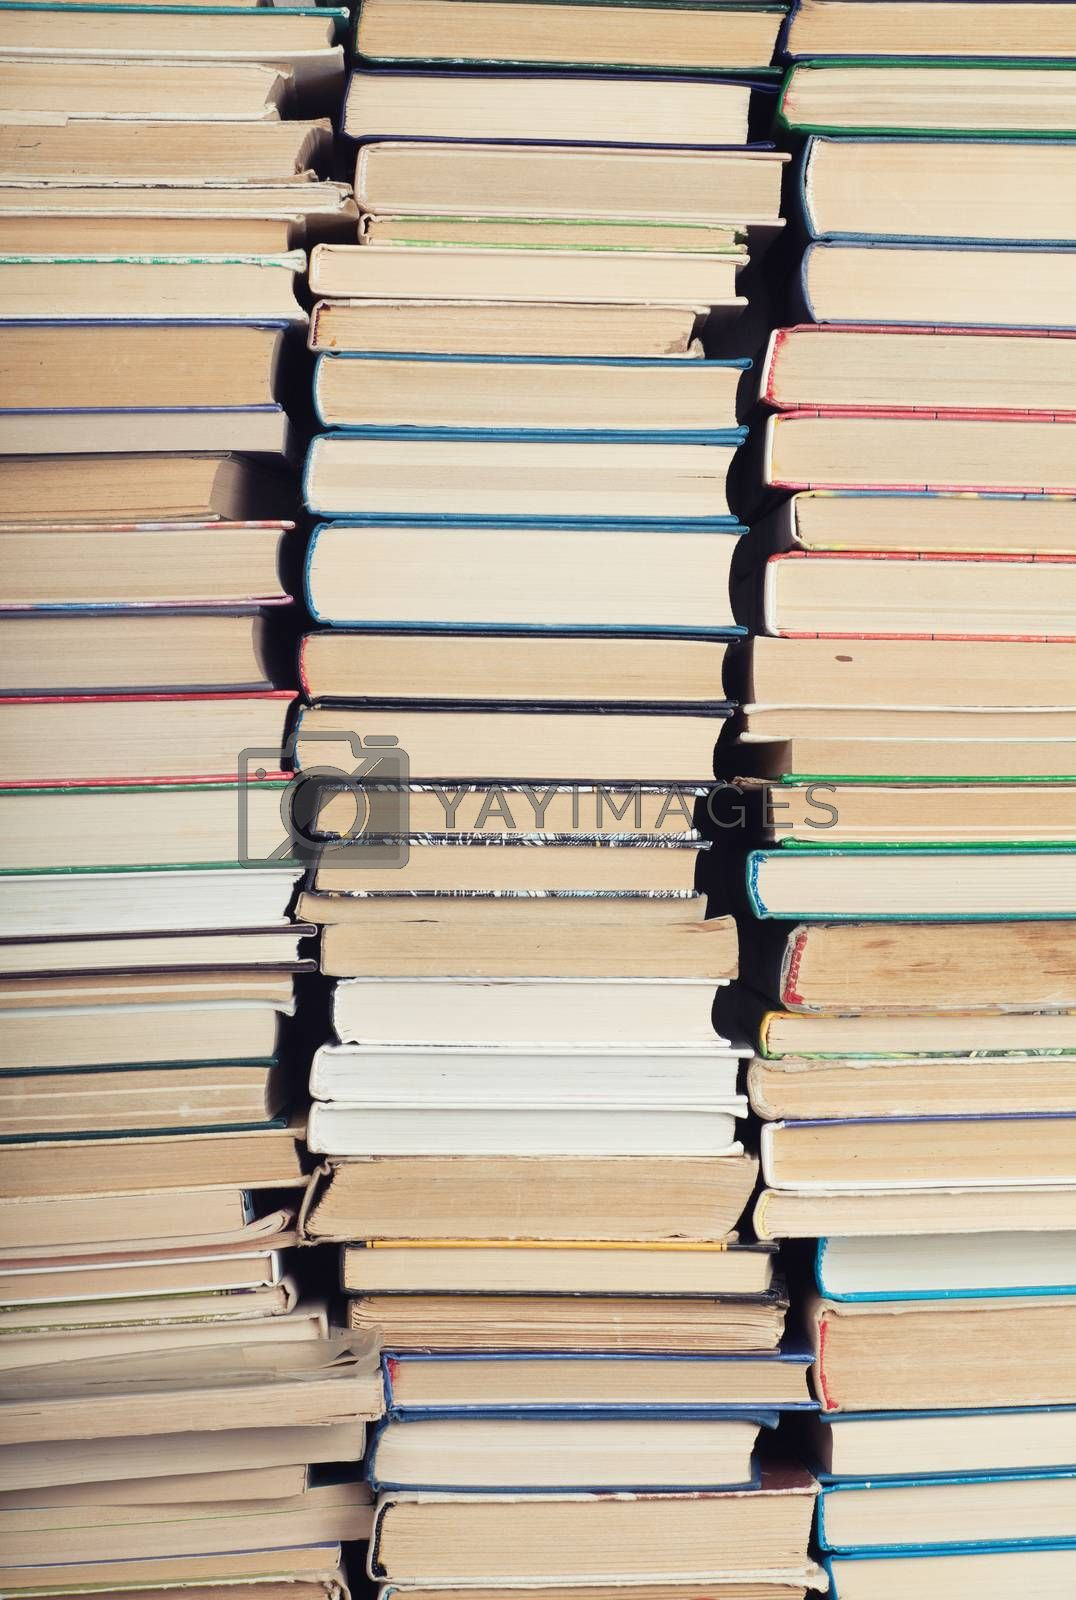 Rear view of three stacks of books